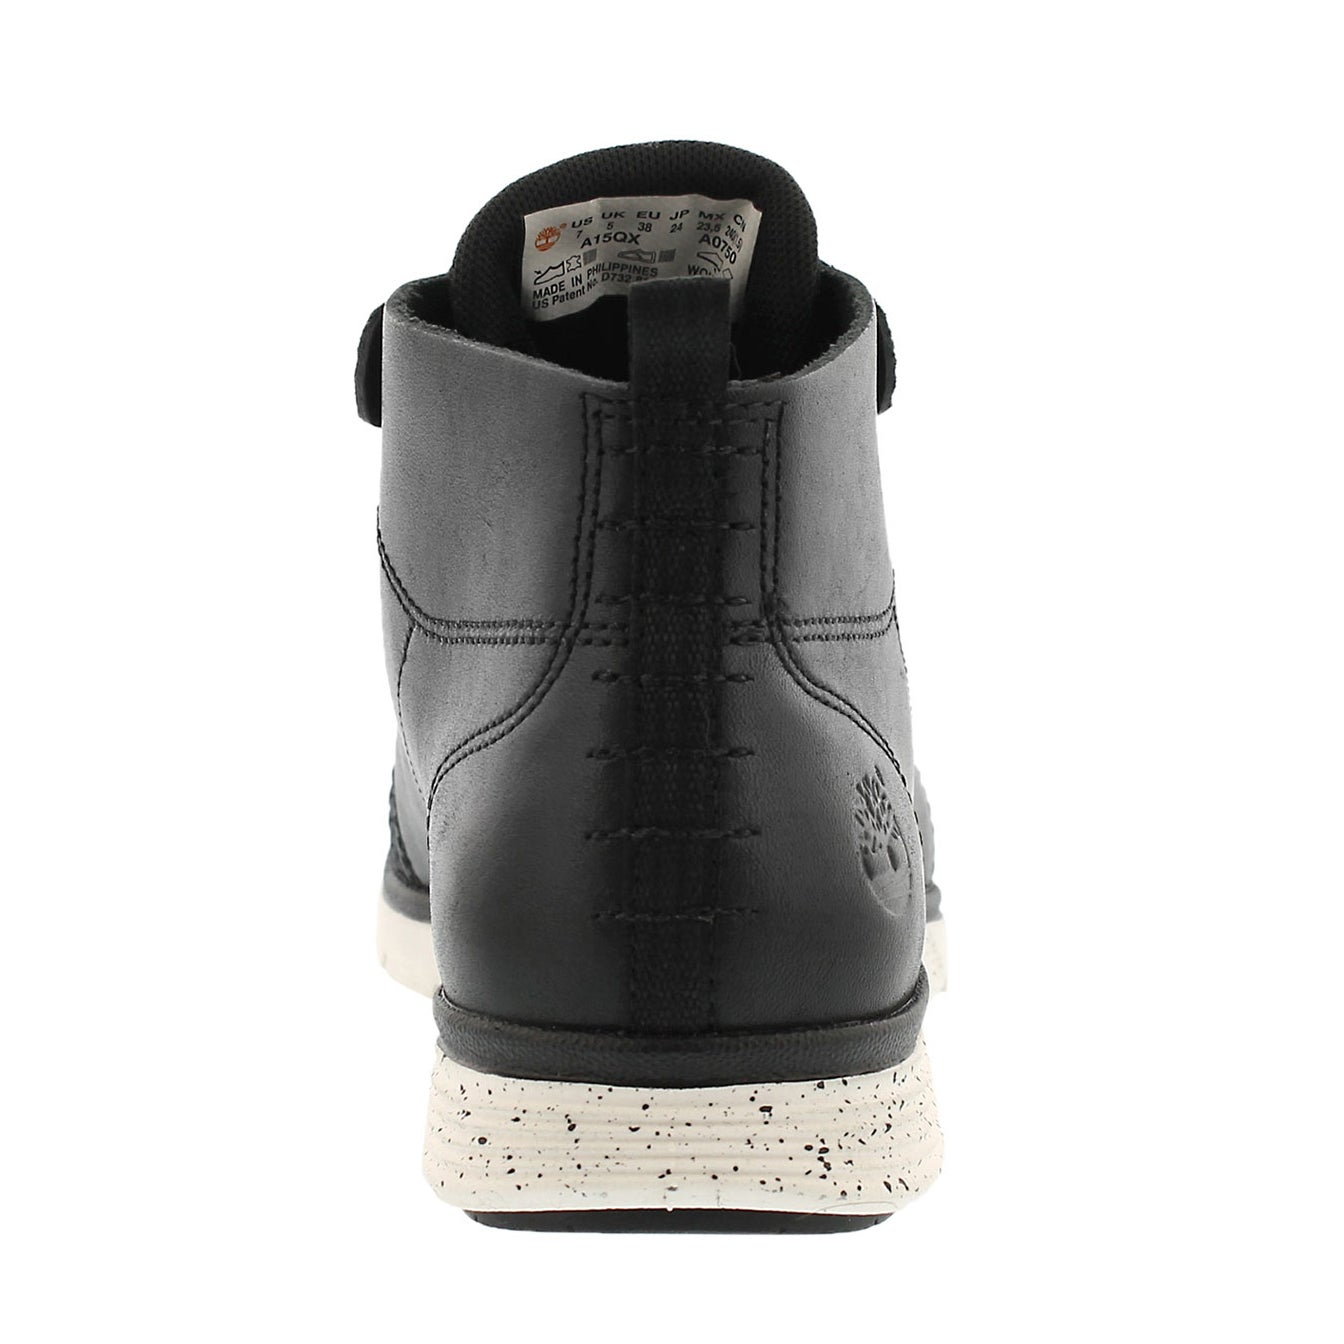 Lds Killington black chukka boot